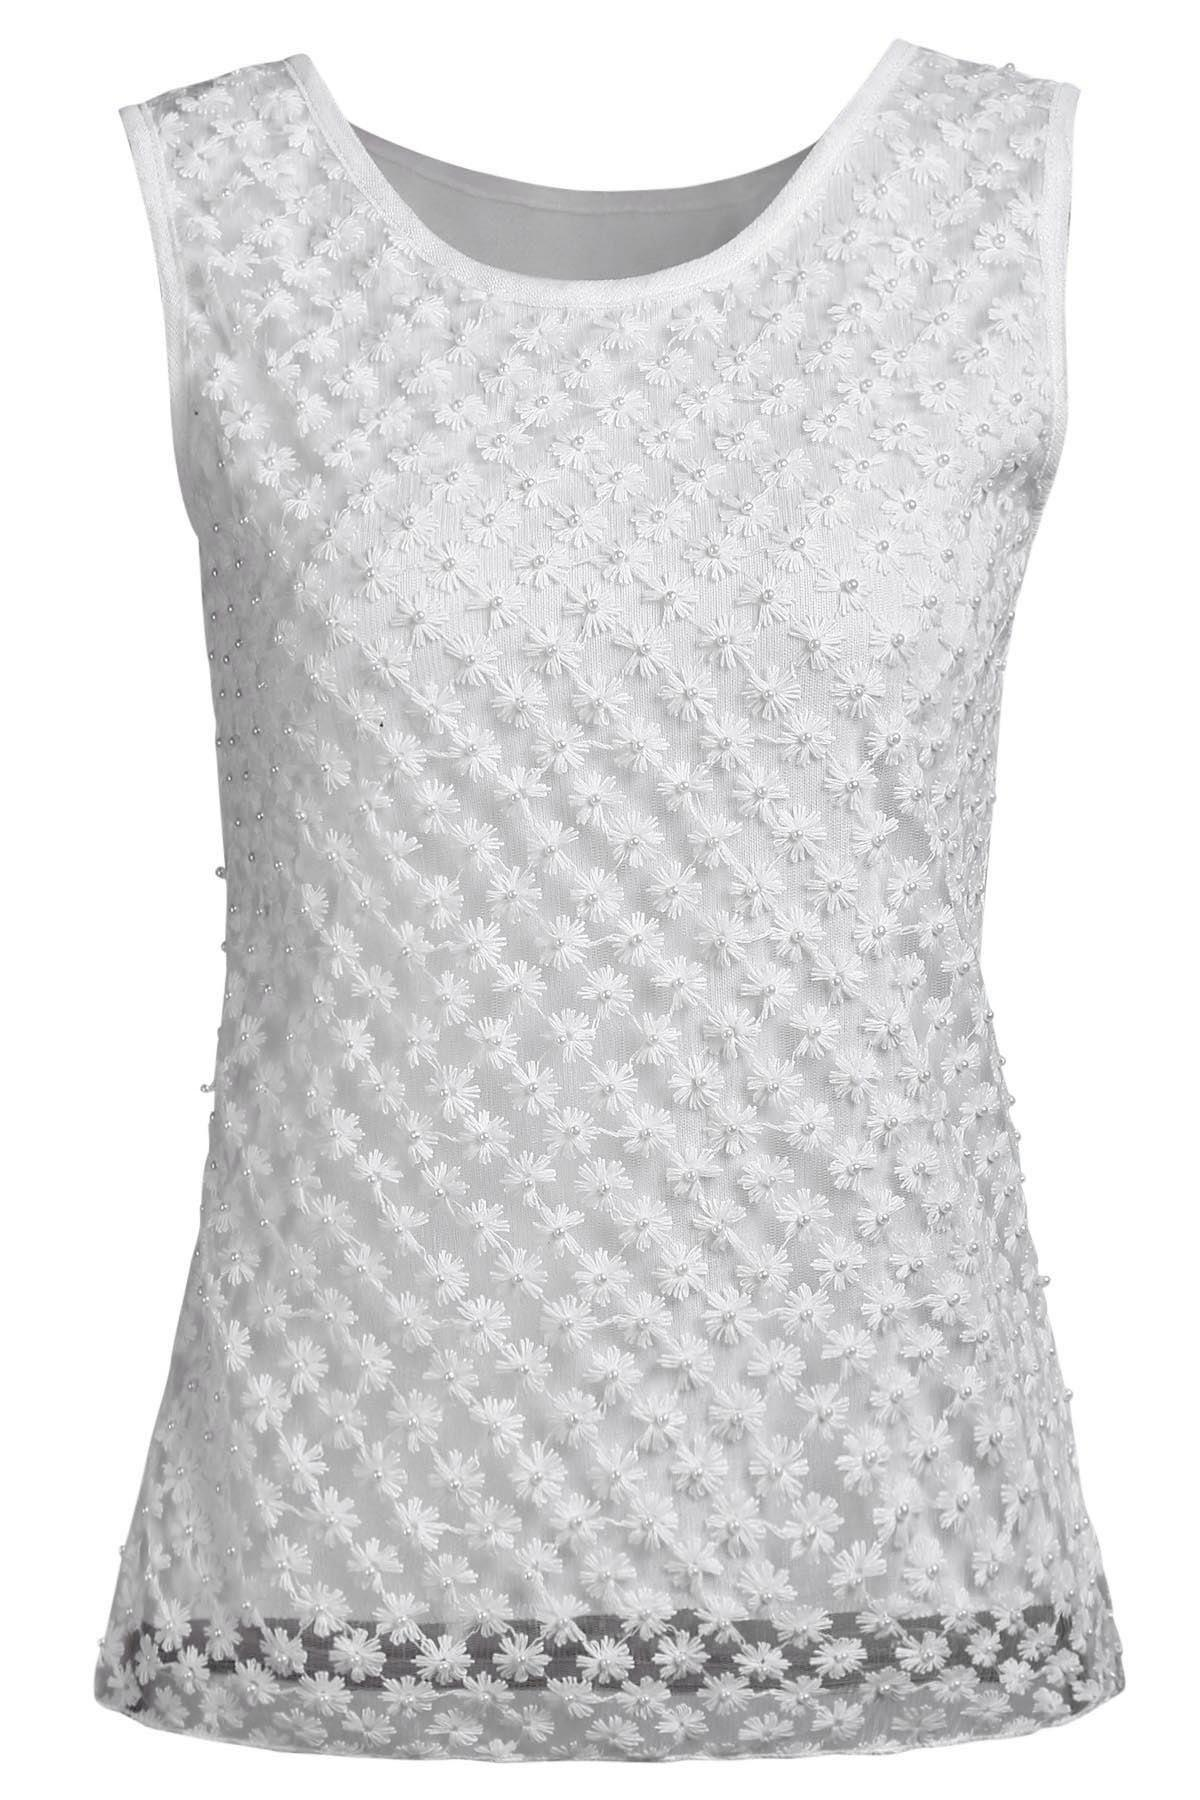 Solid Color Floral Beading Round Neck Tank Top - WHITE ONE SIZE(FIT SIZE XS TO M)